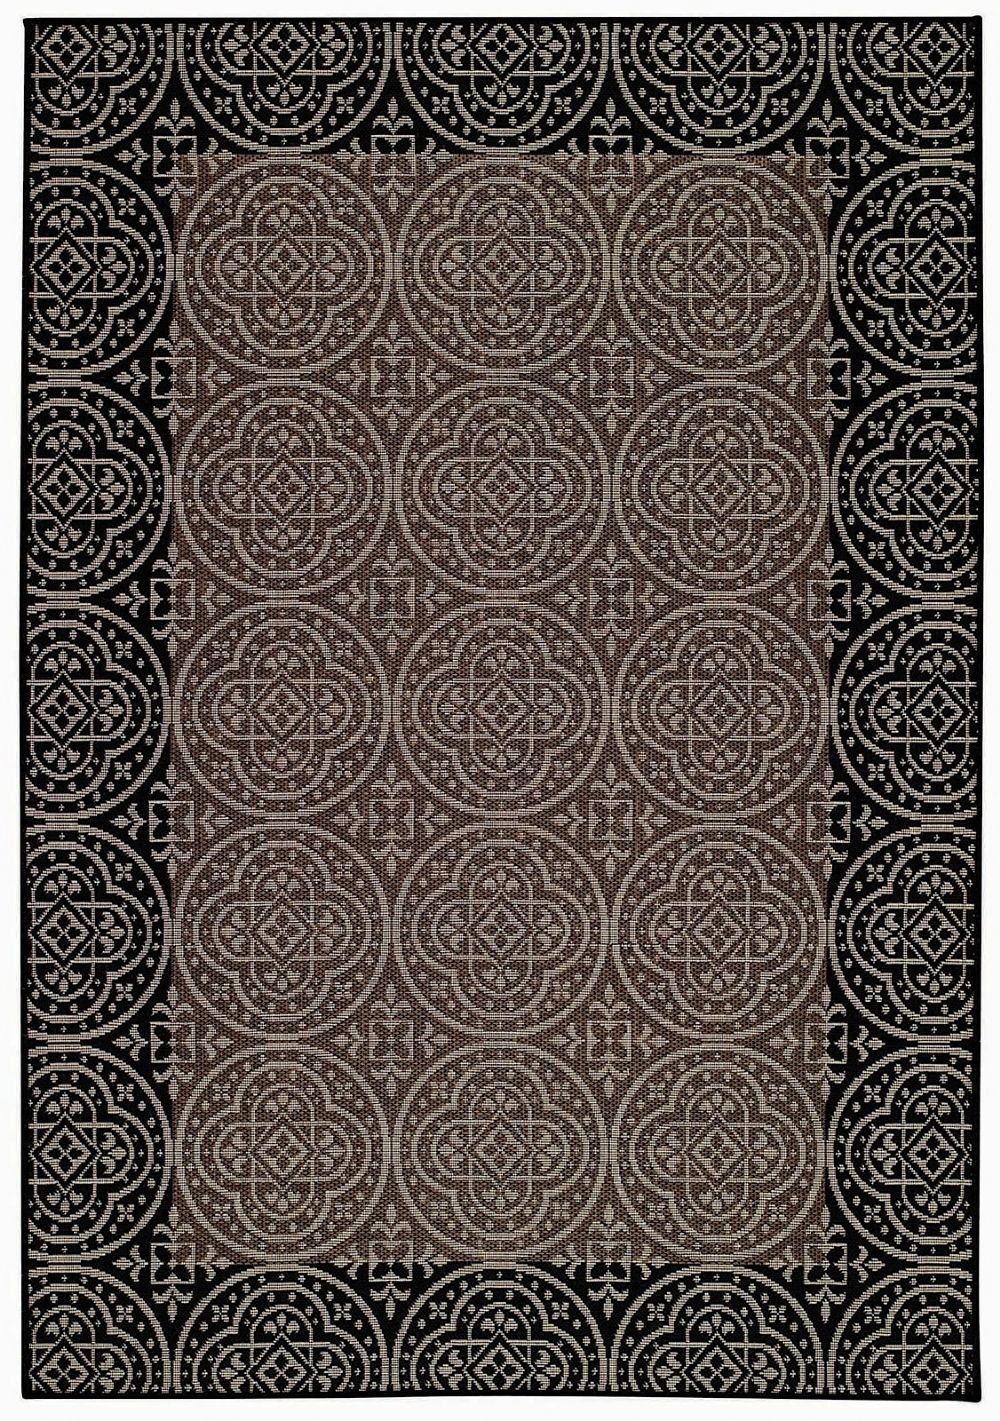 capel sterling-crown contemporary area rug collection